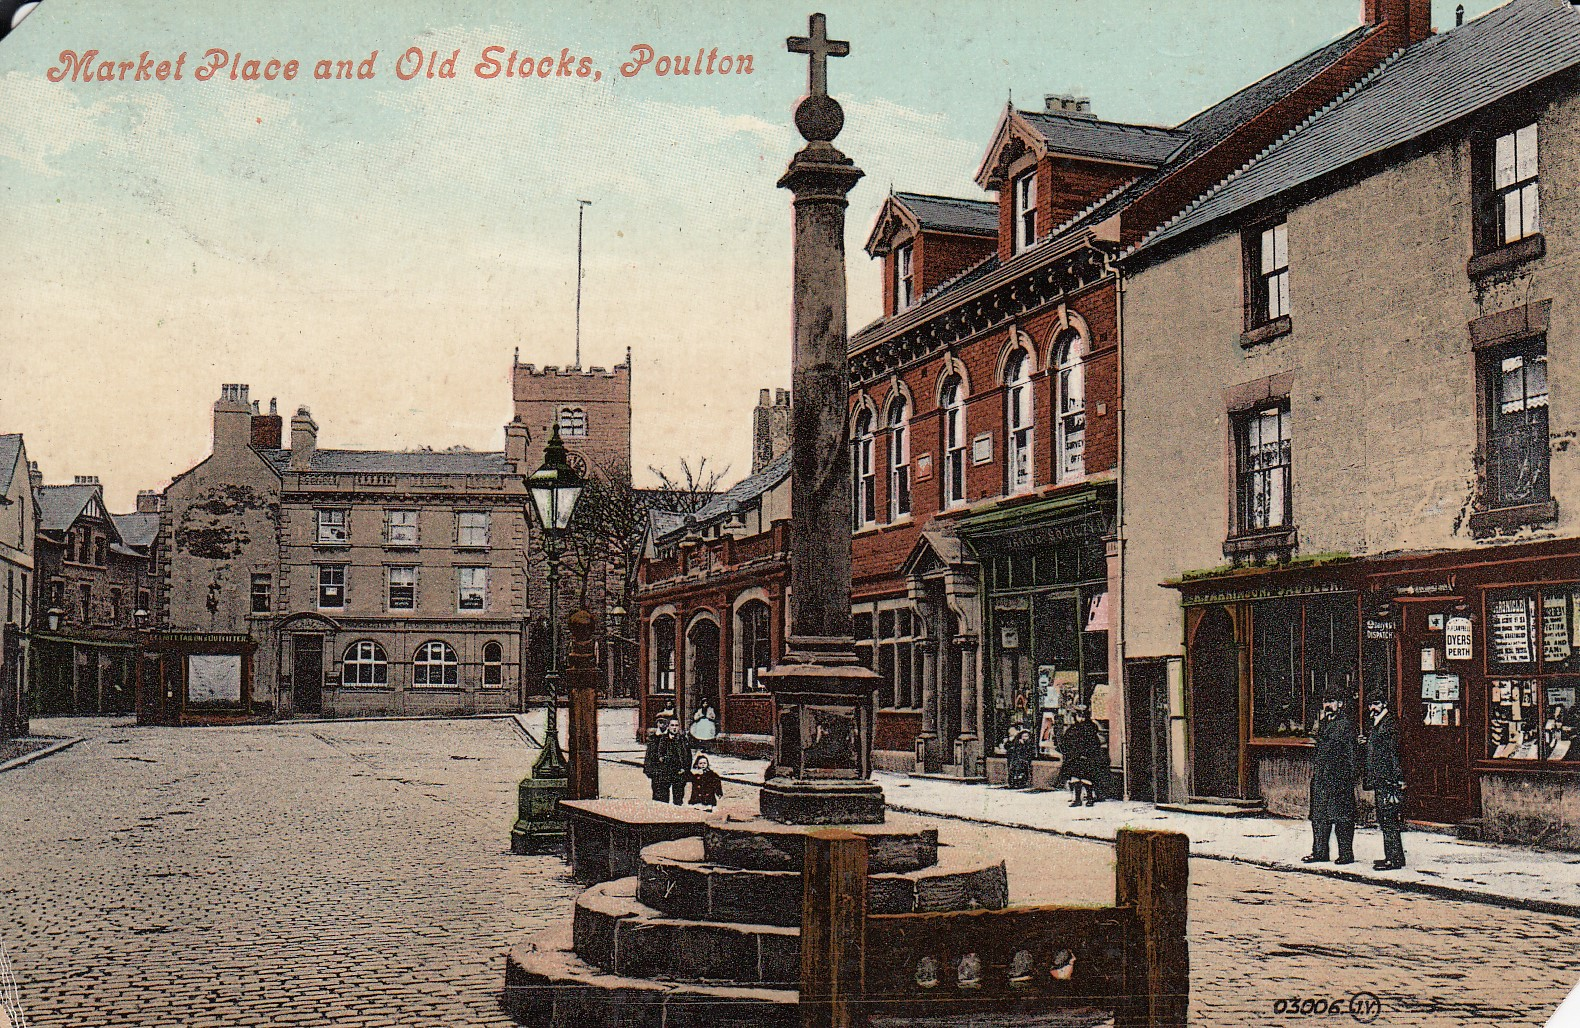 Market Place and Old Stocks, Poulton.  (Unknown date.  Souvenir postcard printed by Valentine's)